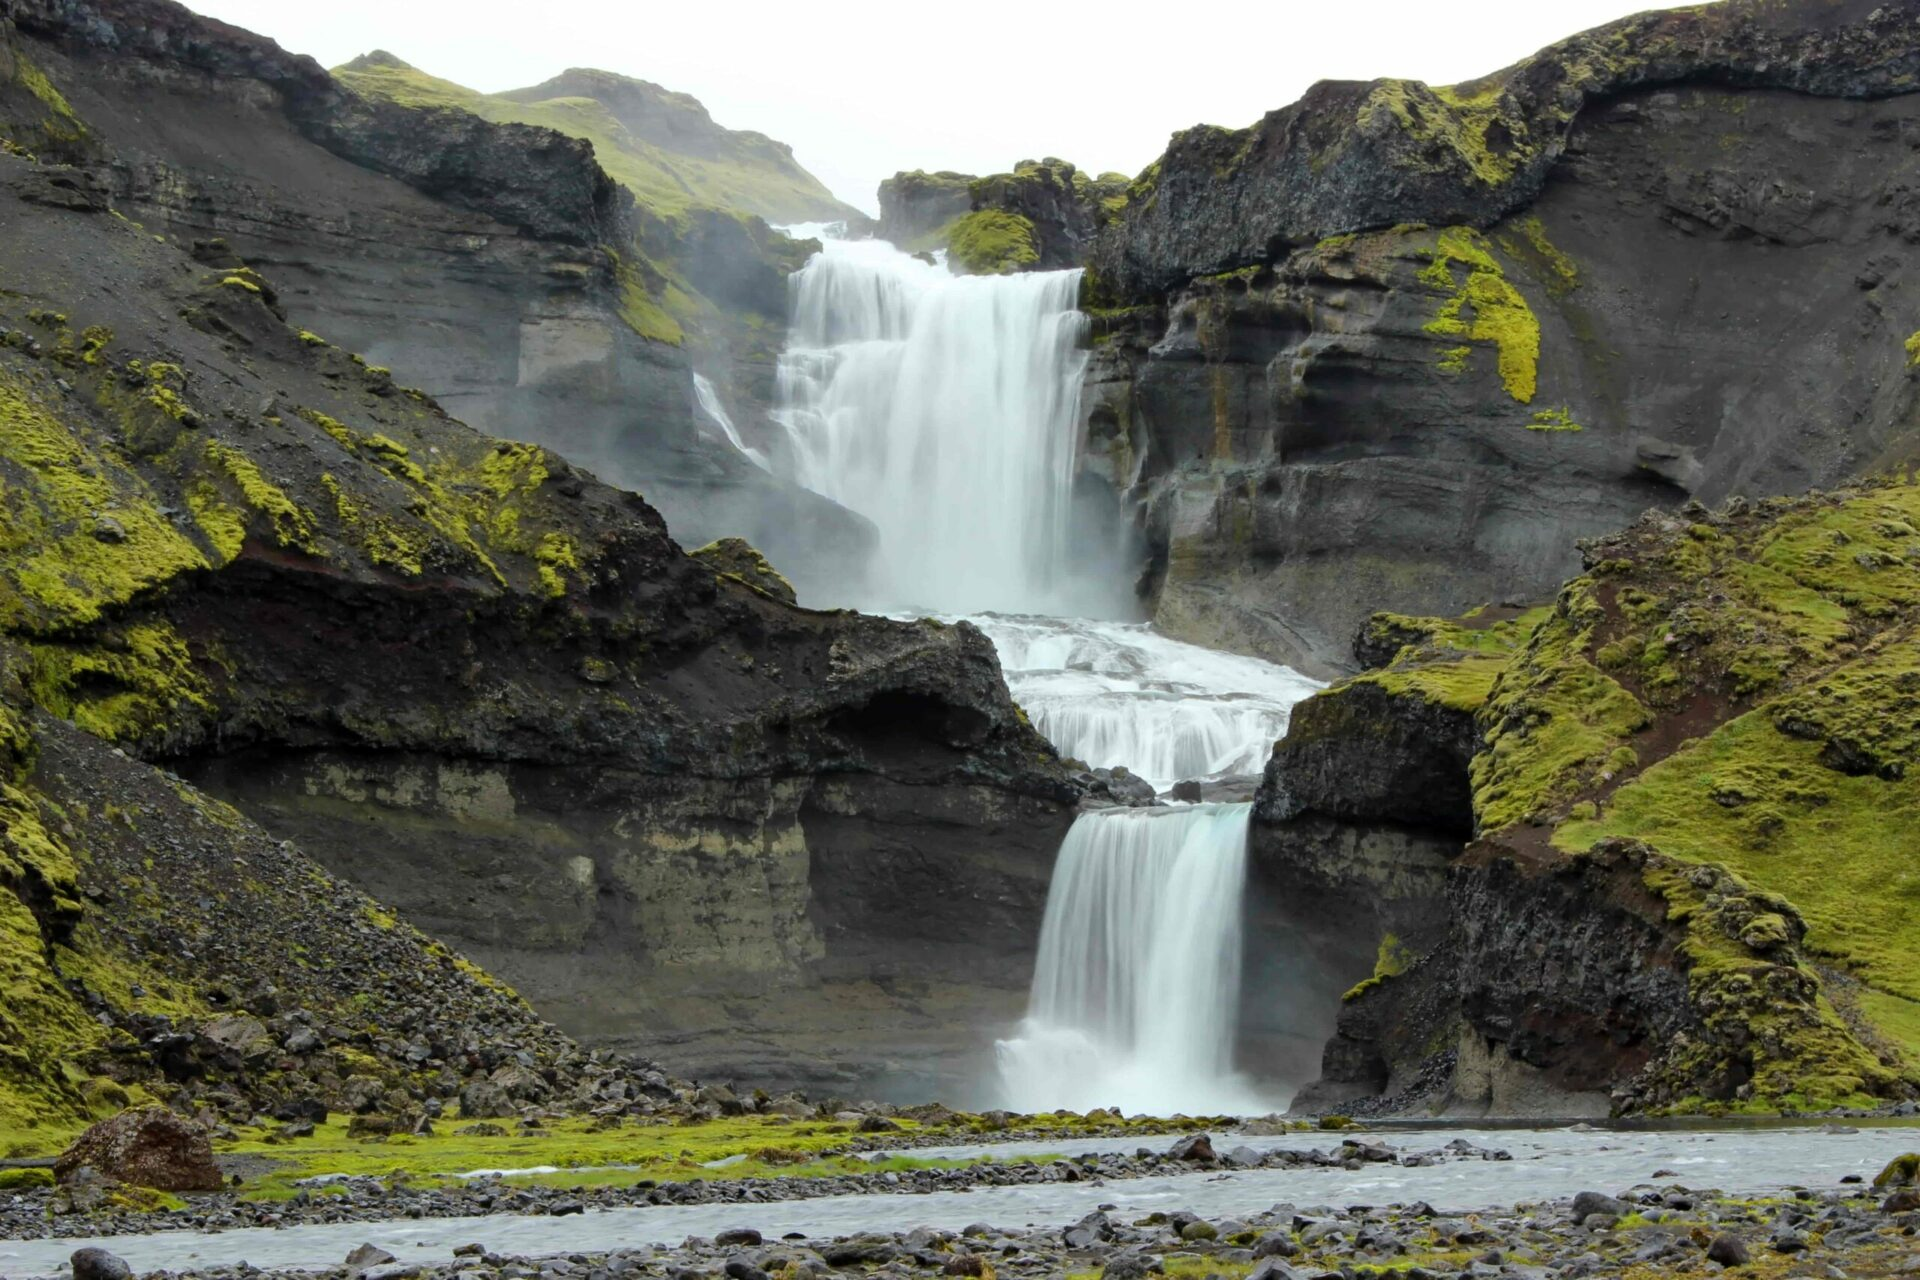 Ófærufoss waterfall in the highlands of Iceland